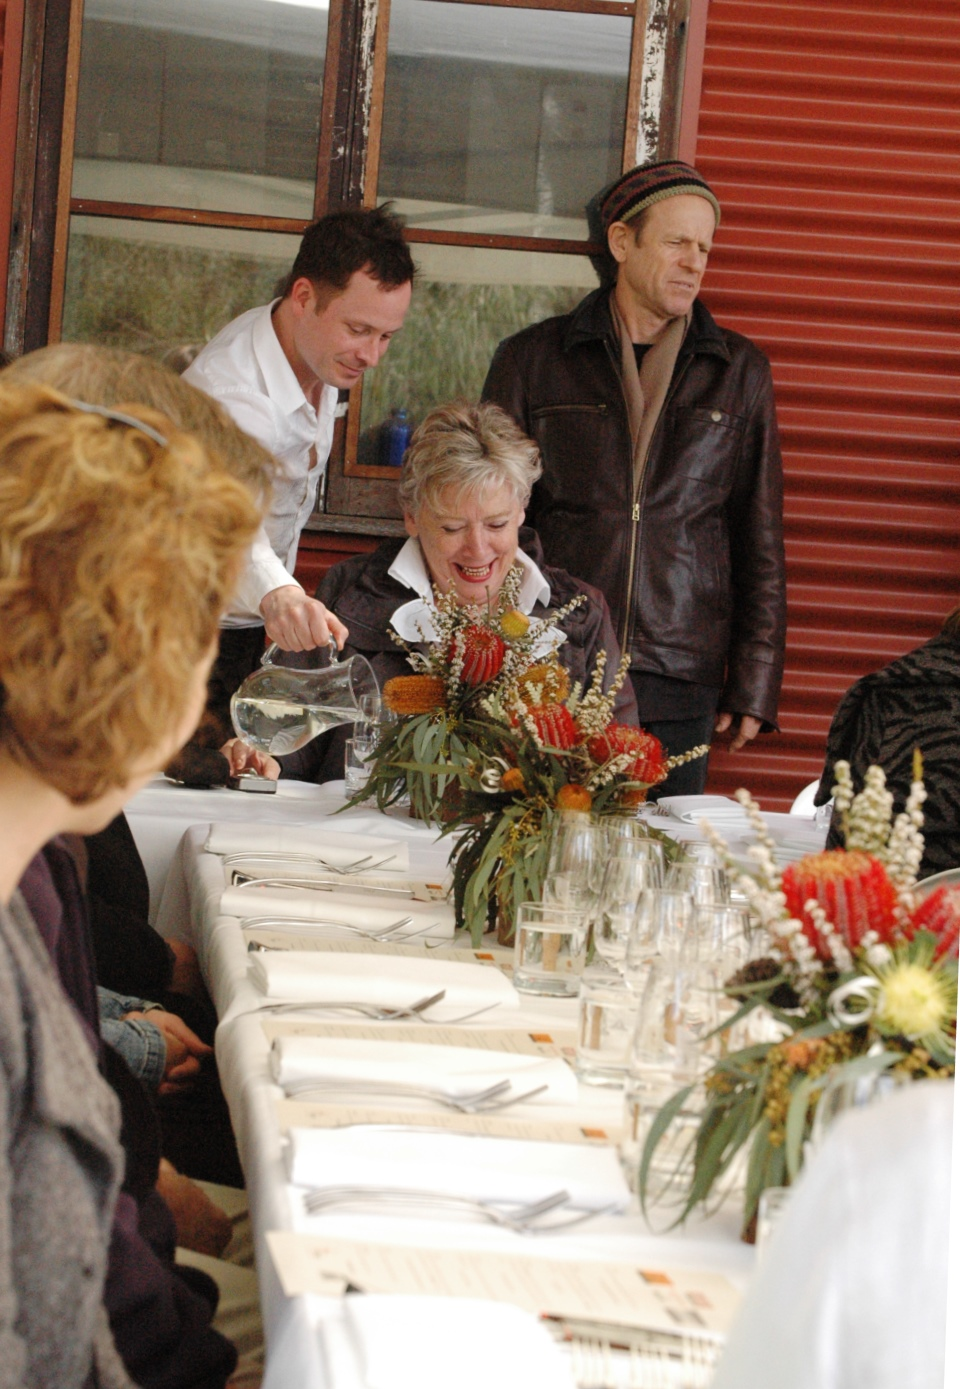 maggie at table.jpg